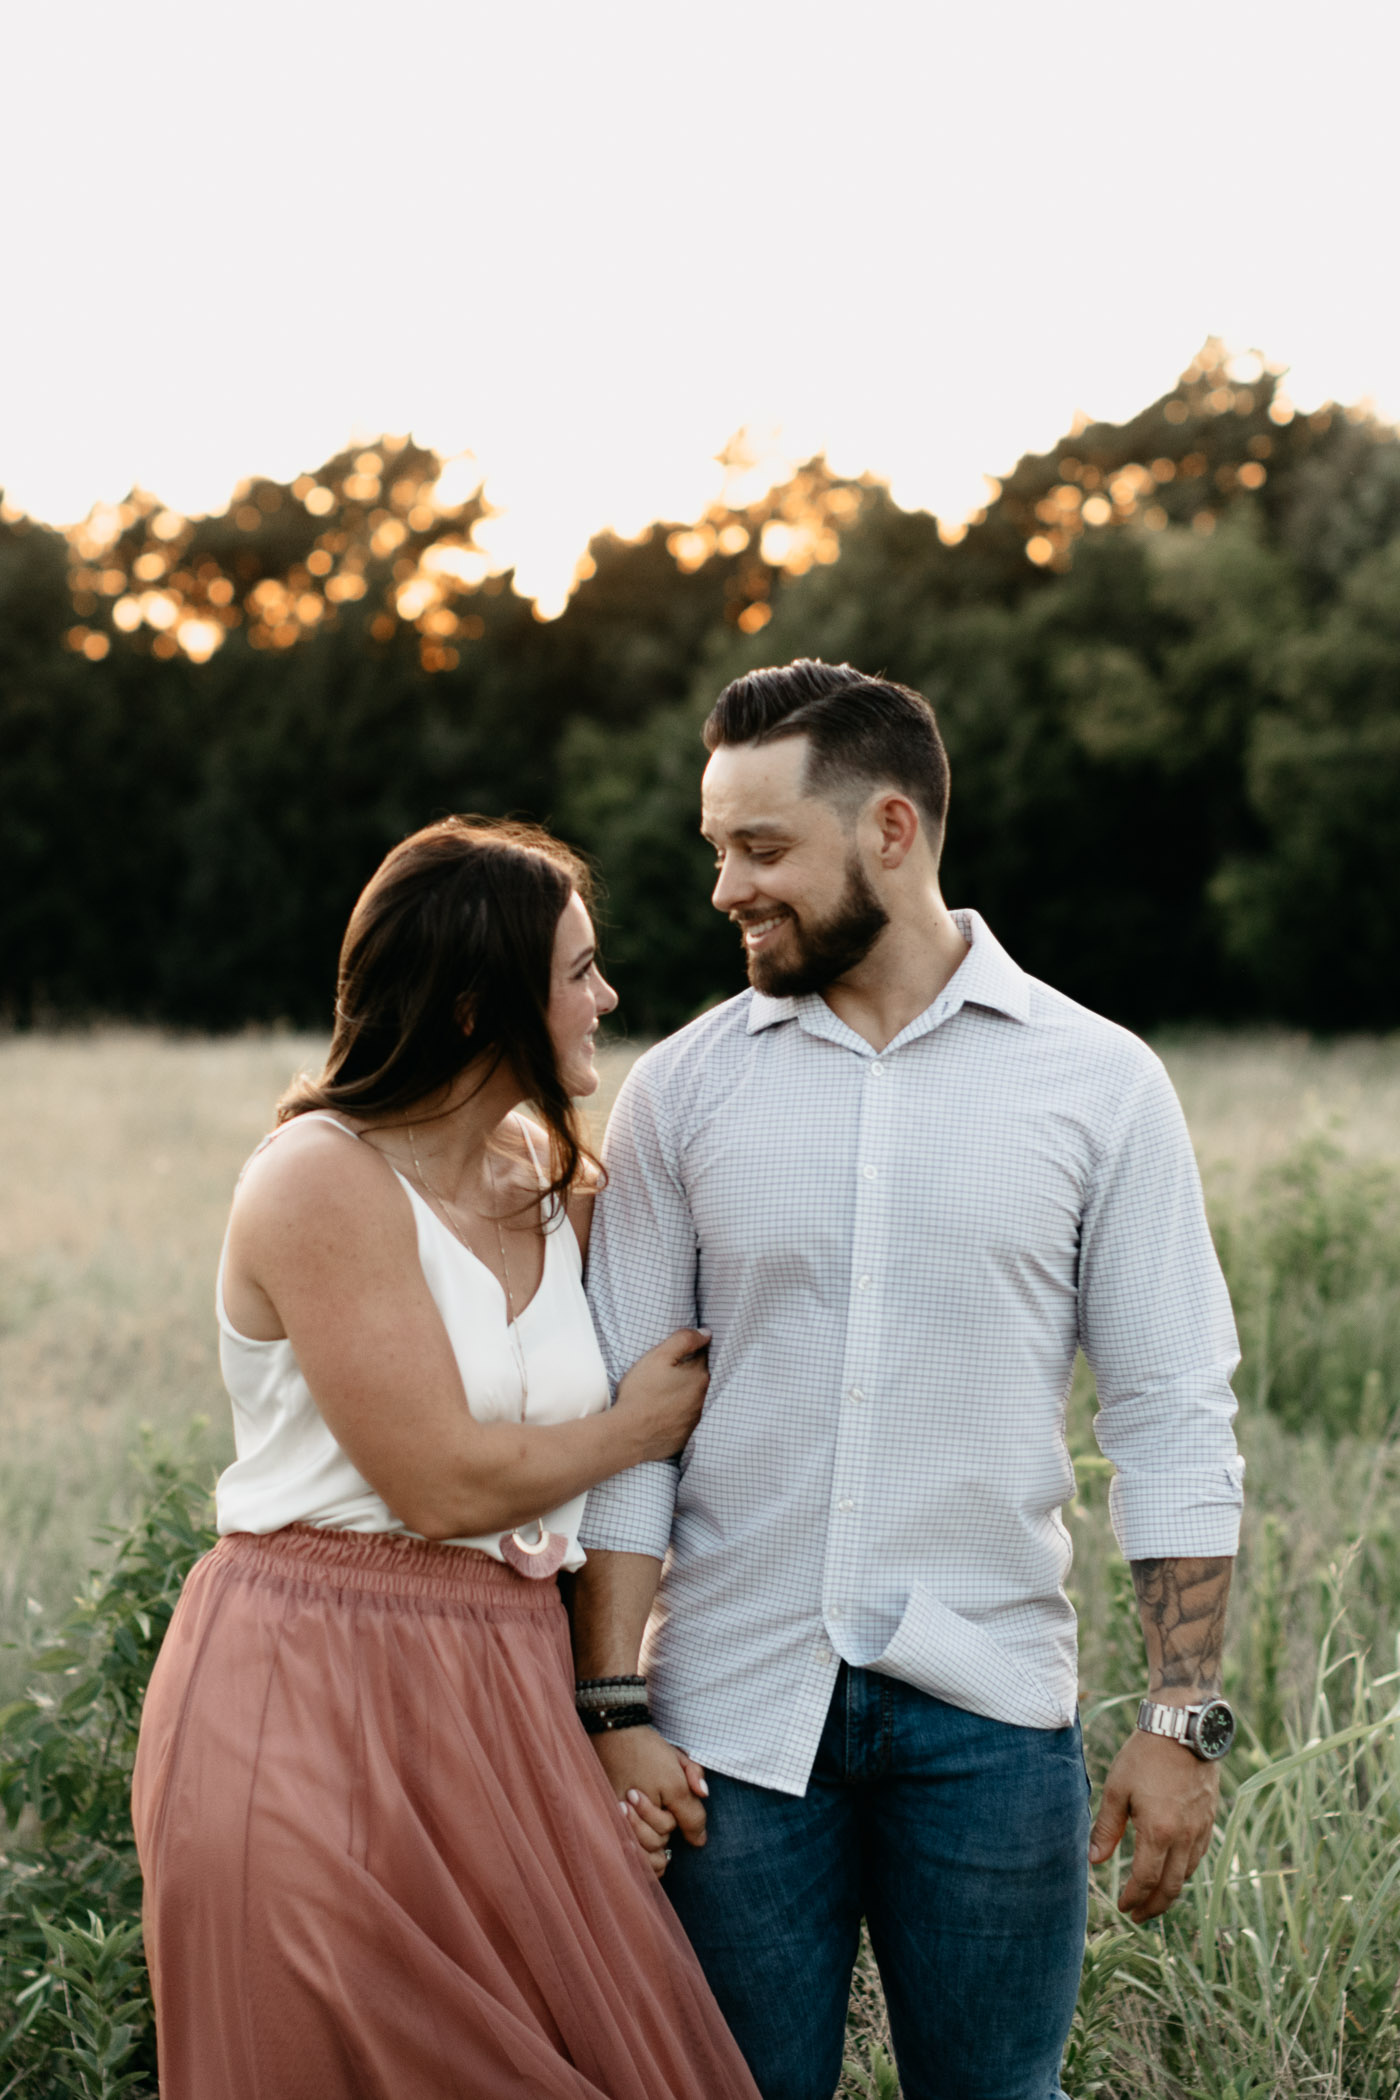 couple looking at each other during engagement session at sunset